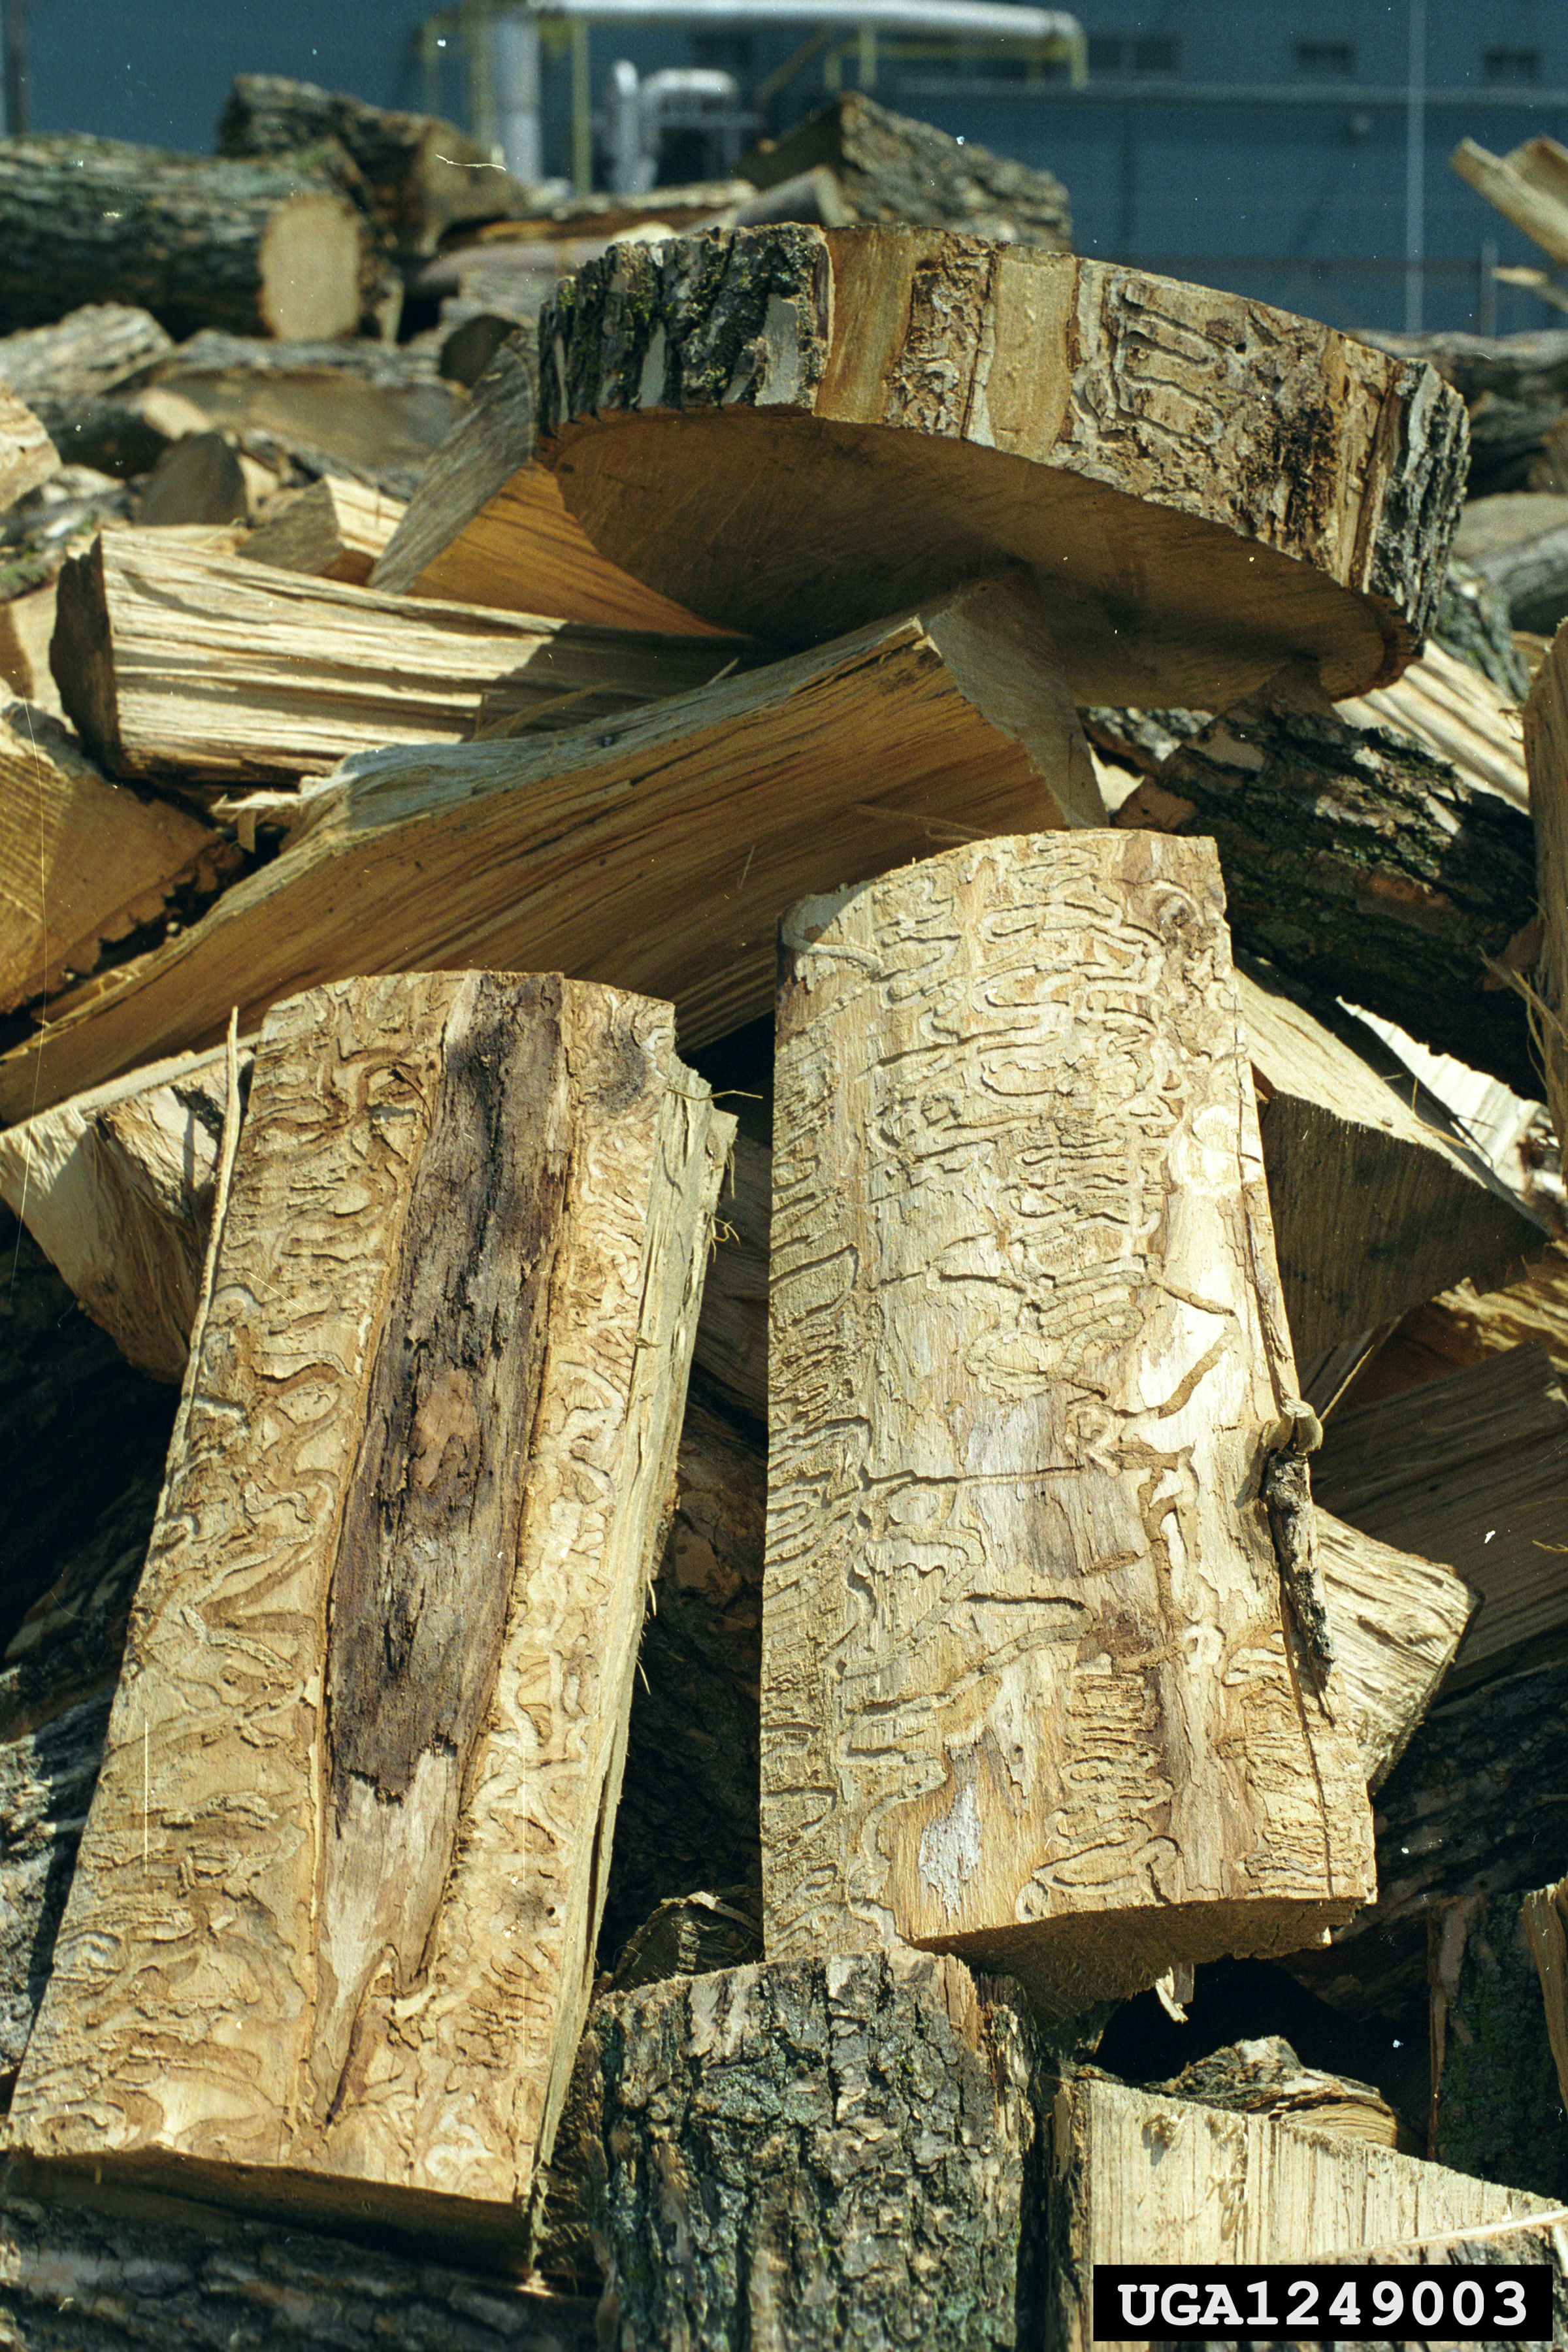 EAB Infested Firewood Pile